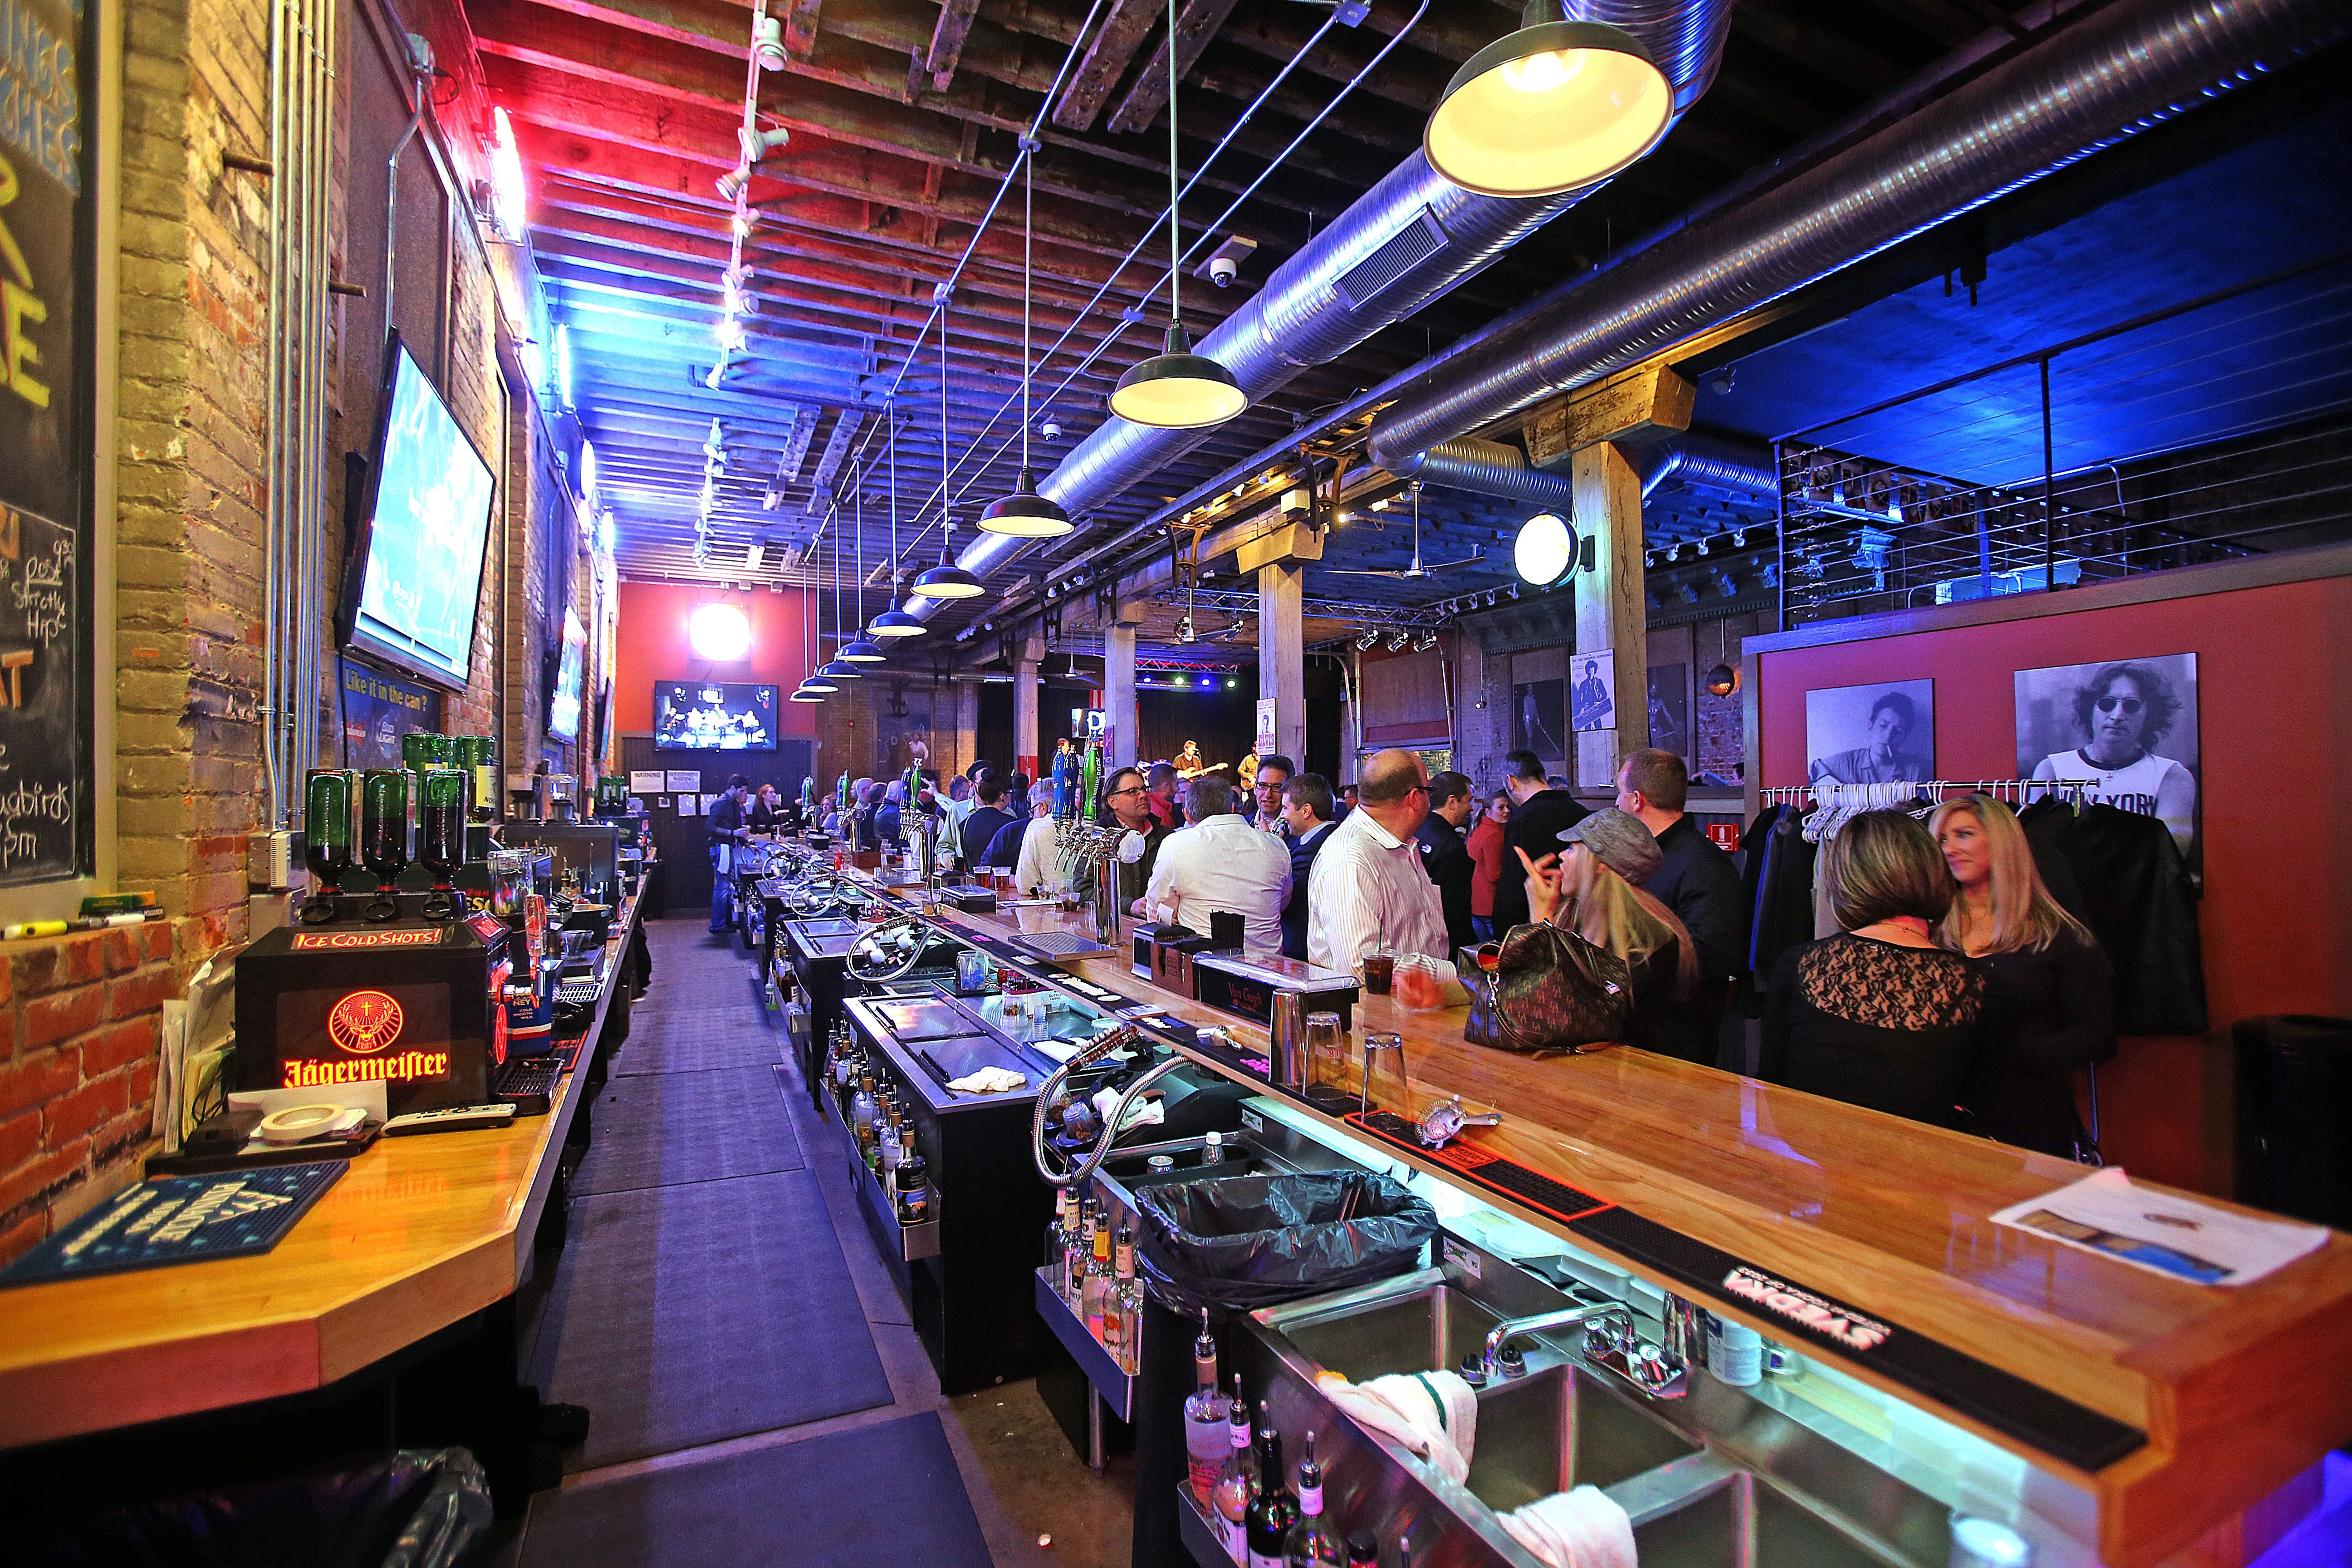 Buffalo Iron Works, which opened a few weeks ago in the Cobblestone District, offers musical acts five nights a week, as well as food and locally brewed beers.